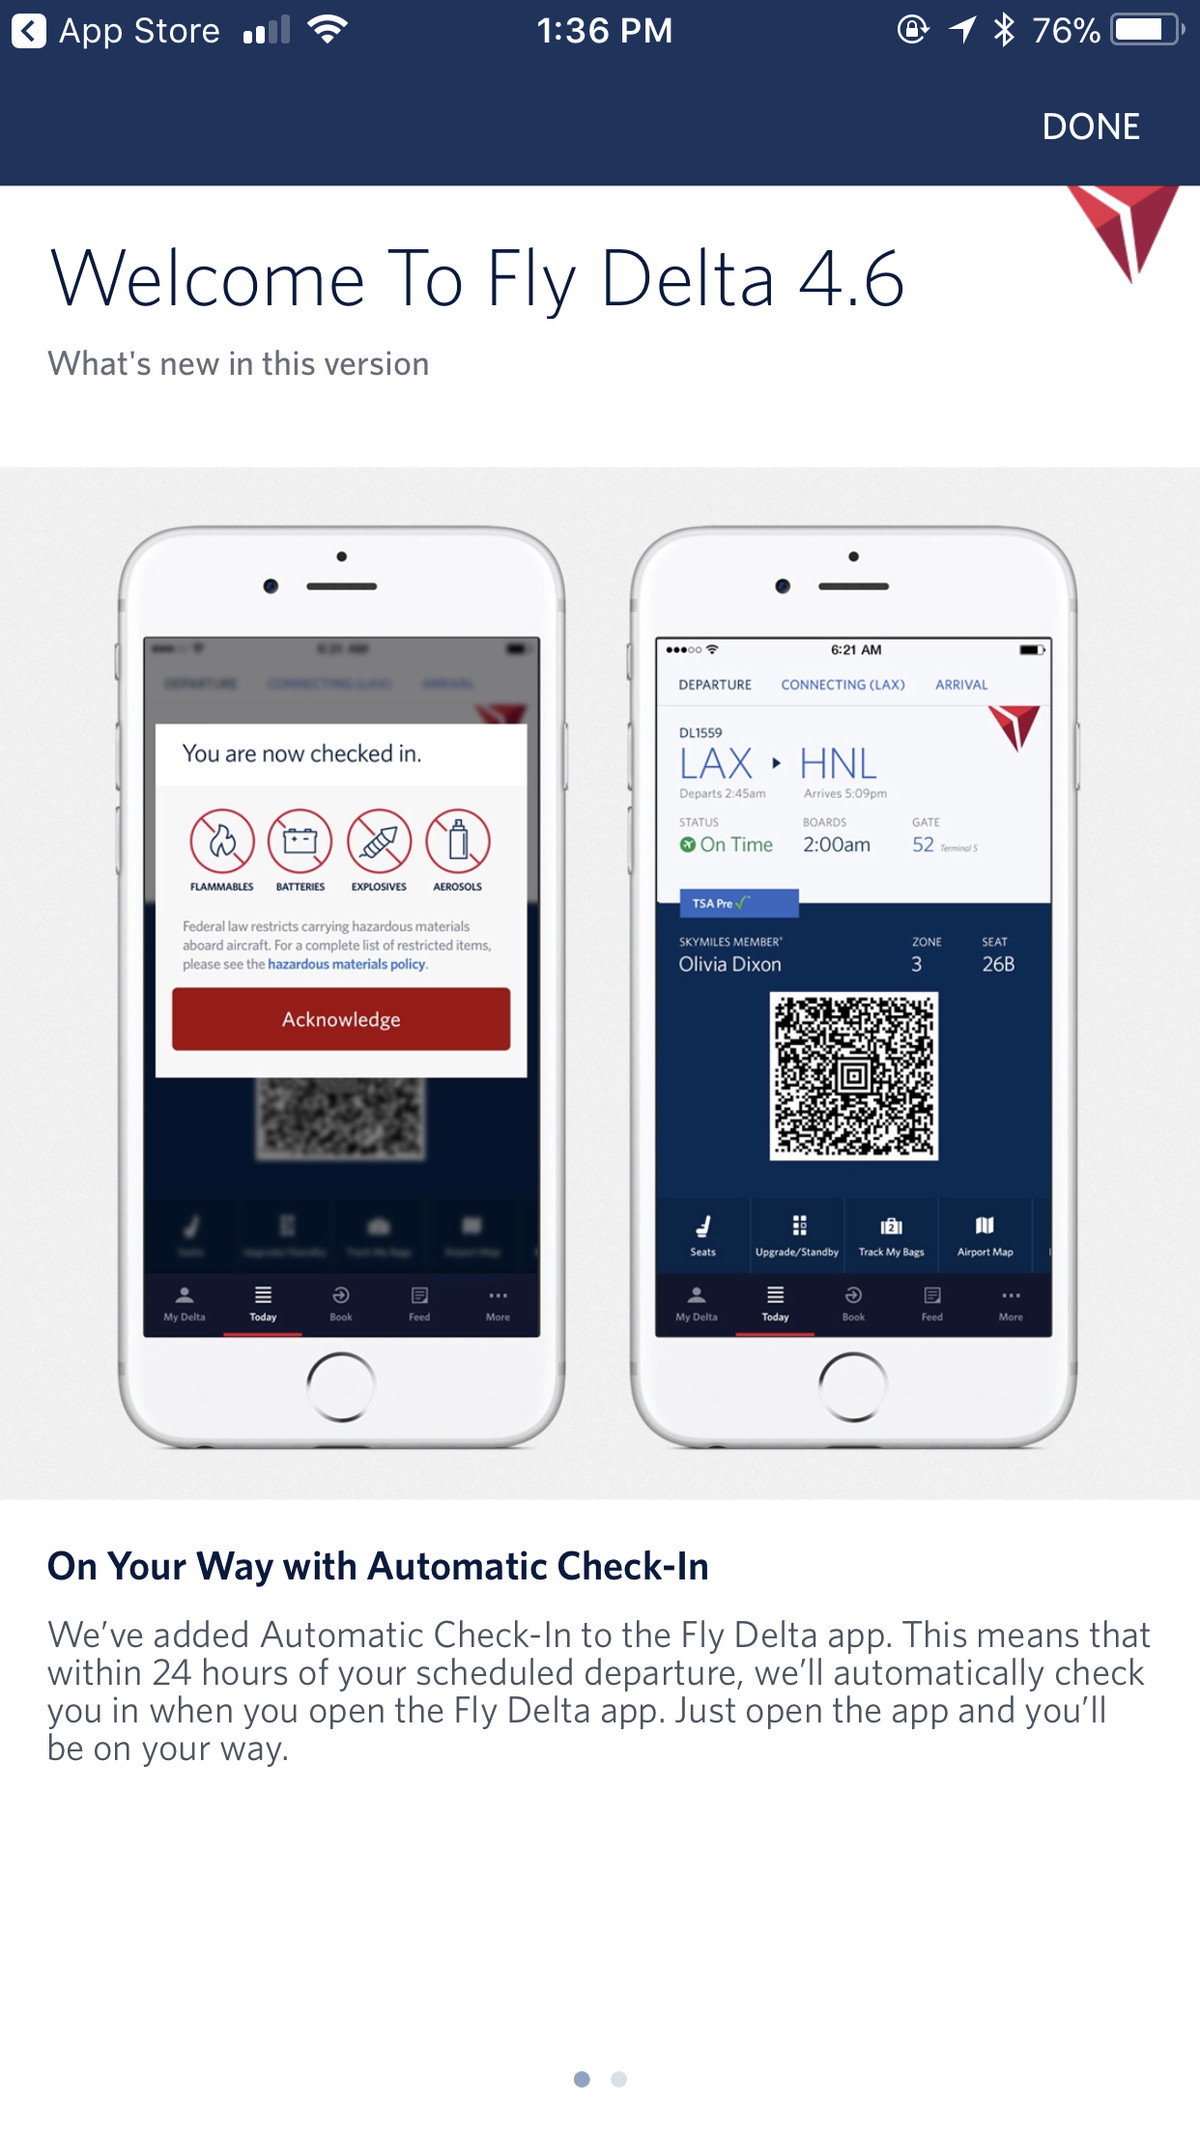 Delta will automatically check in passengers with its mobile app ...